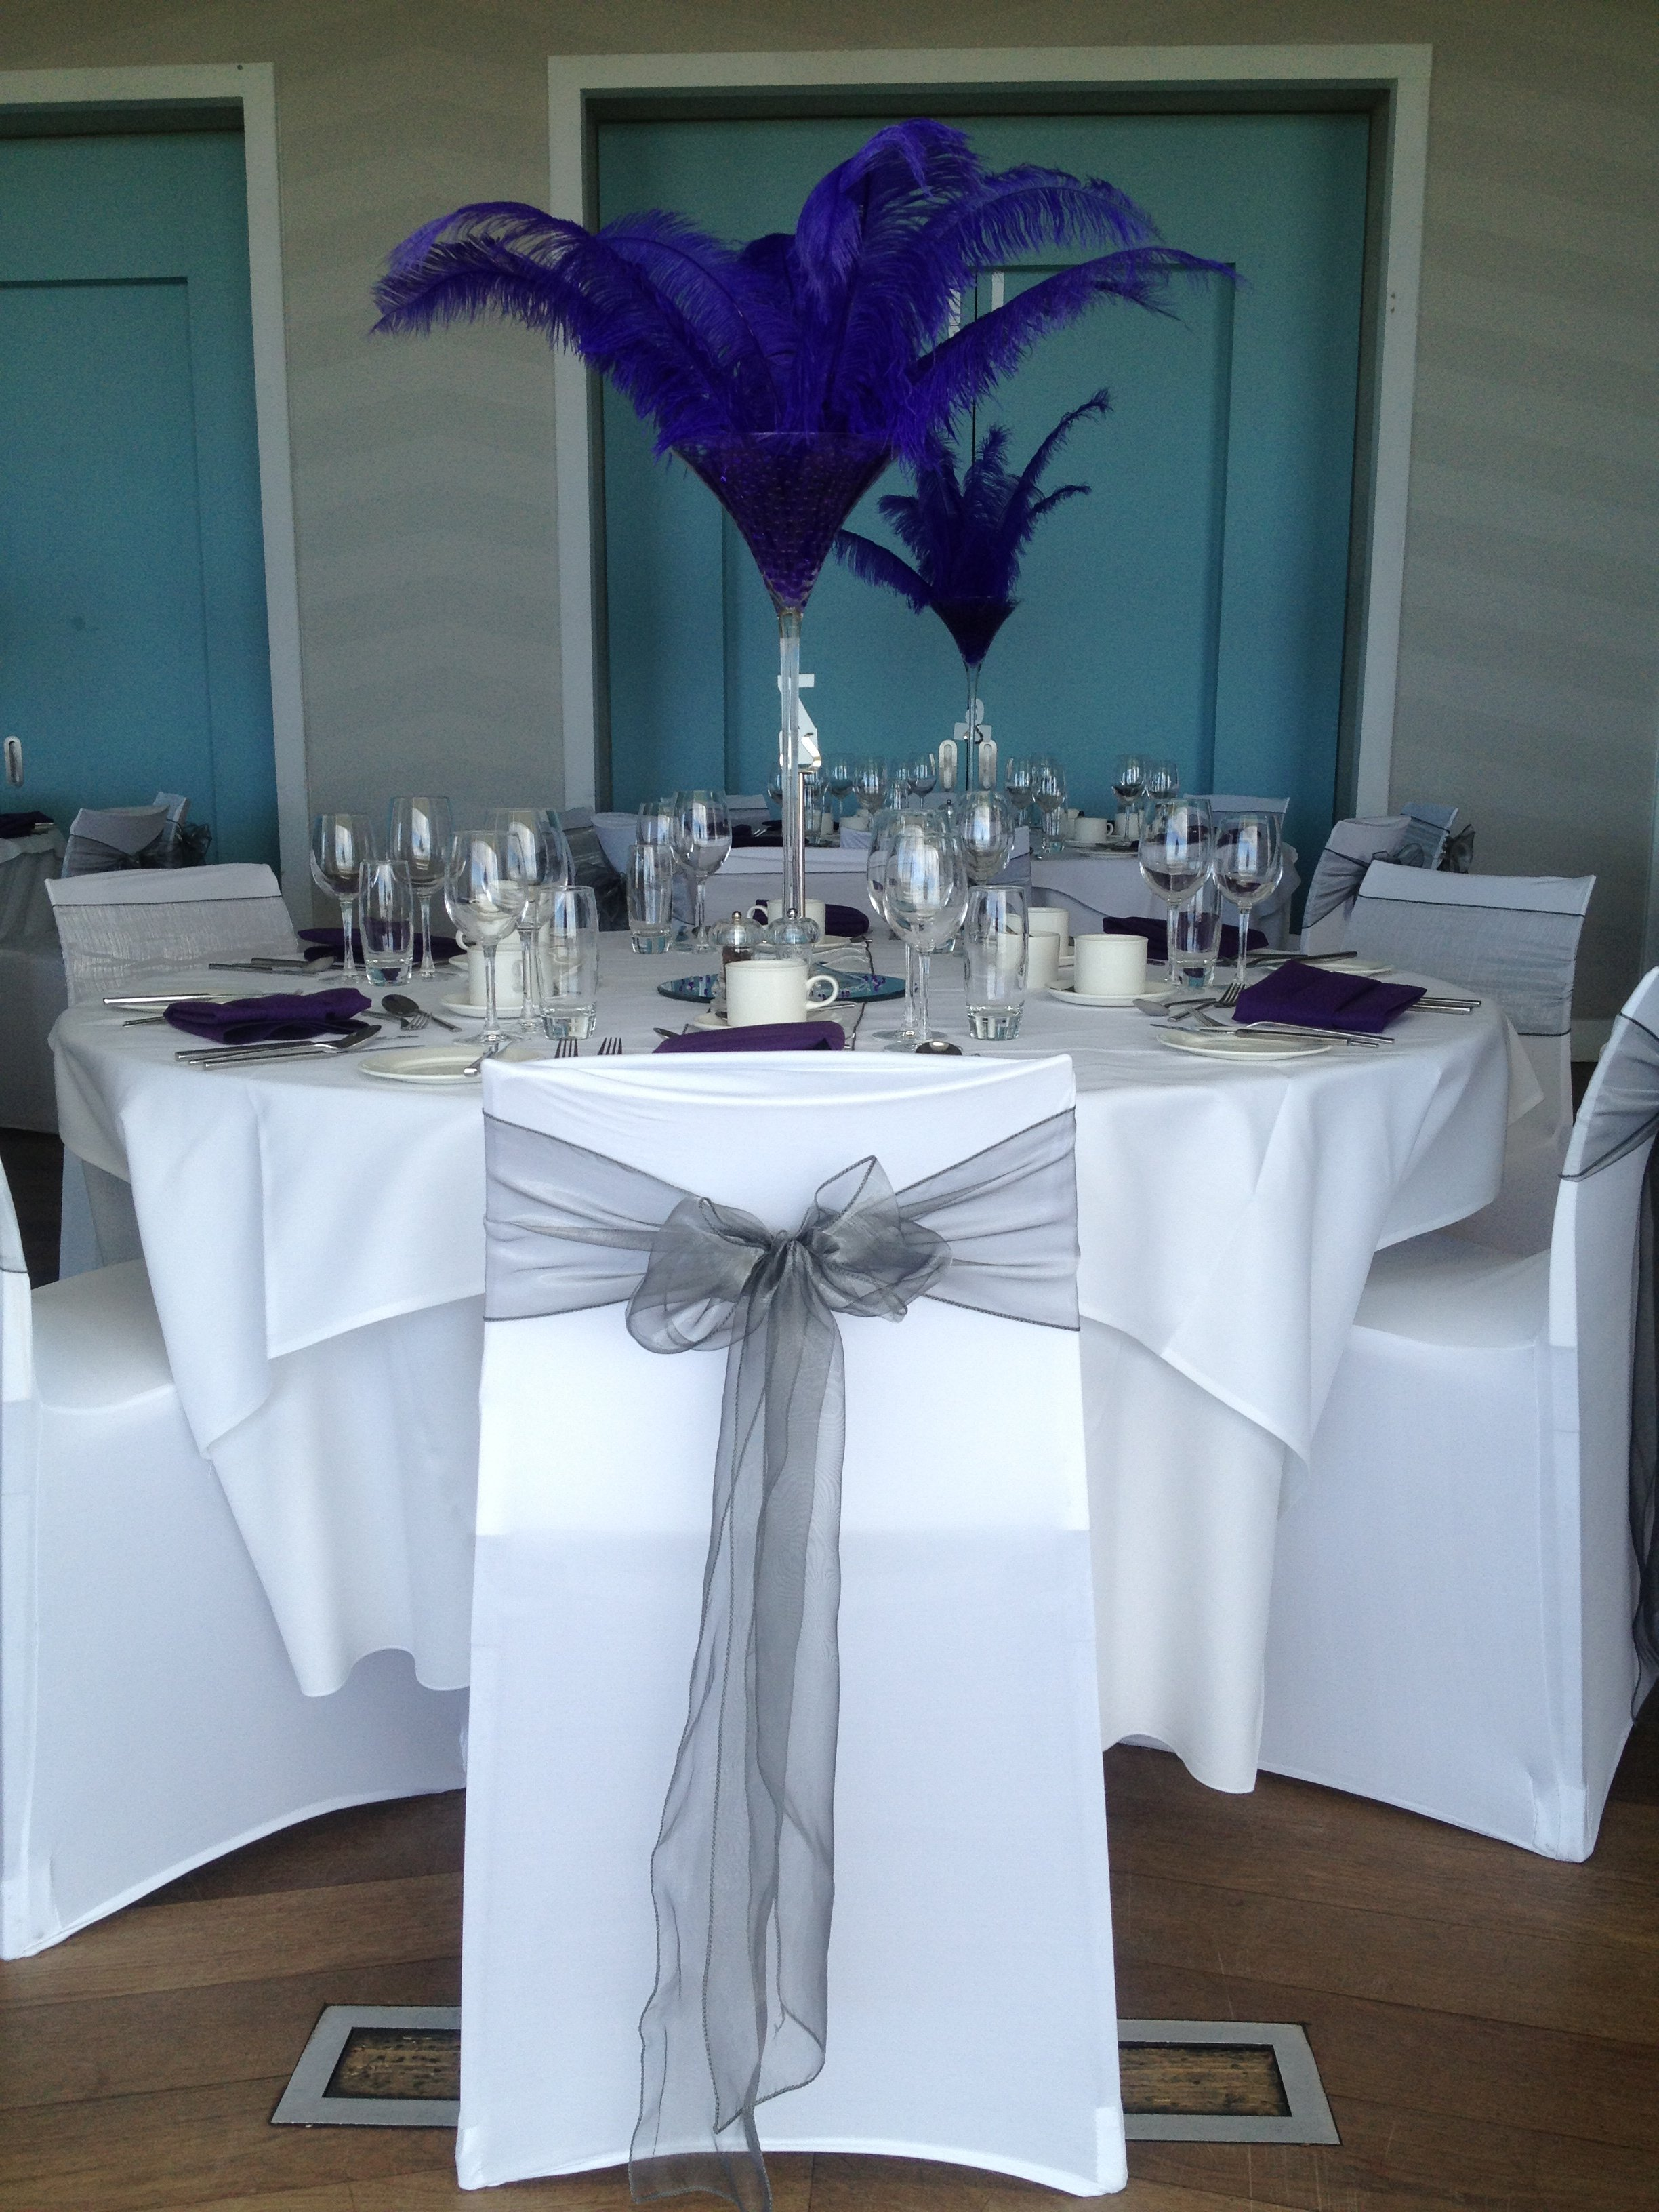 chair covers morecambe rolling office on wood floors masquerade ball decorations razzle dazzle wedding and